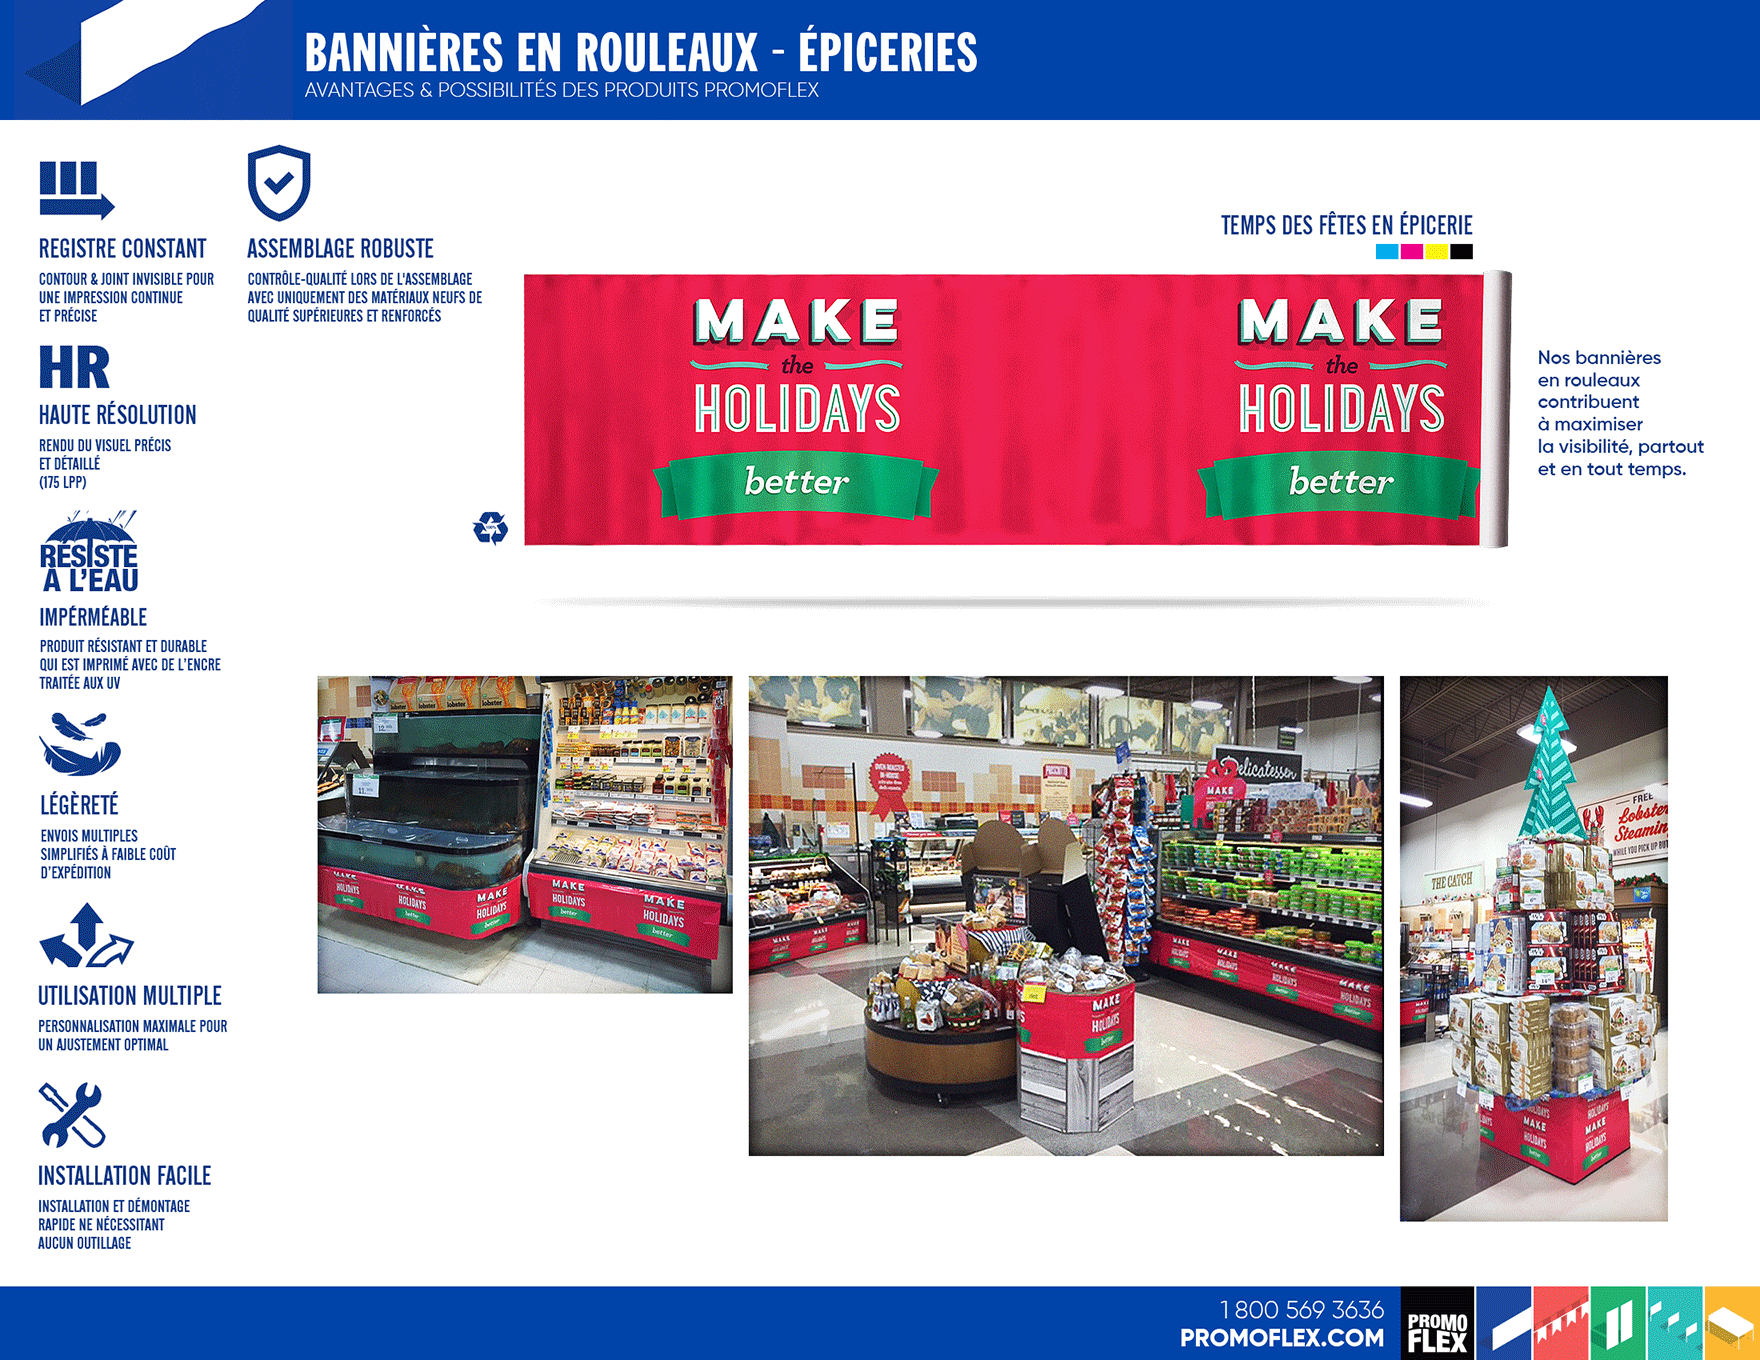 roll-banners-grocery-stores-fr-10n.png (592 KB)